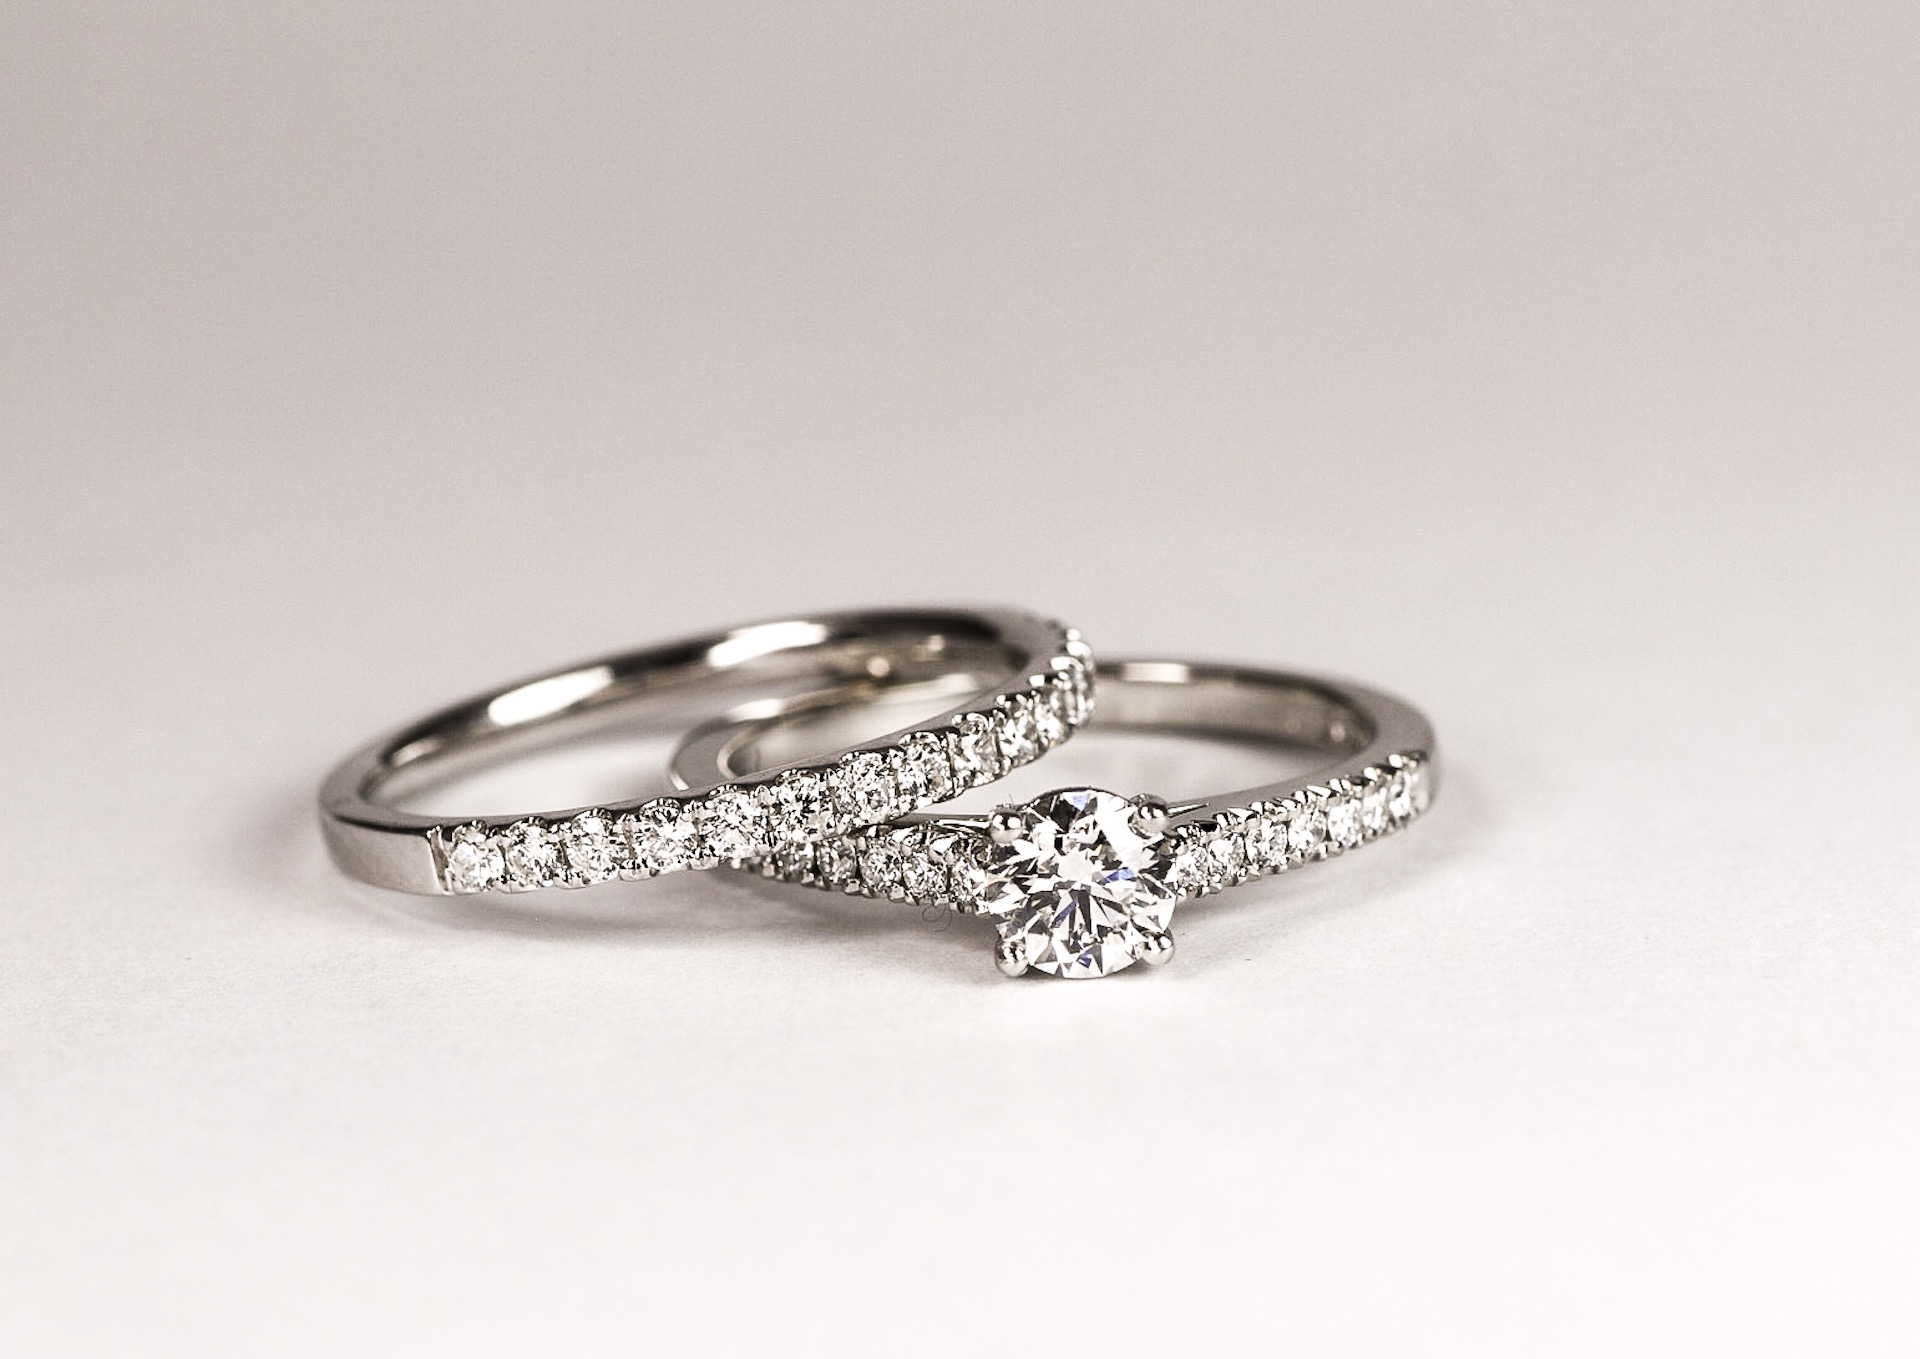 Copy of Four claw set 0.37ct diamond solitaire with cut away set shoulders and matching band. Made in Chichester, England.